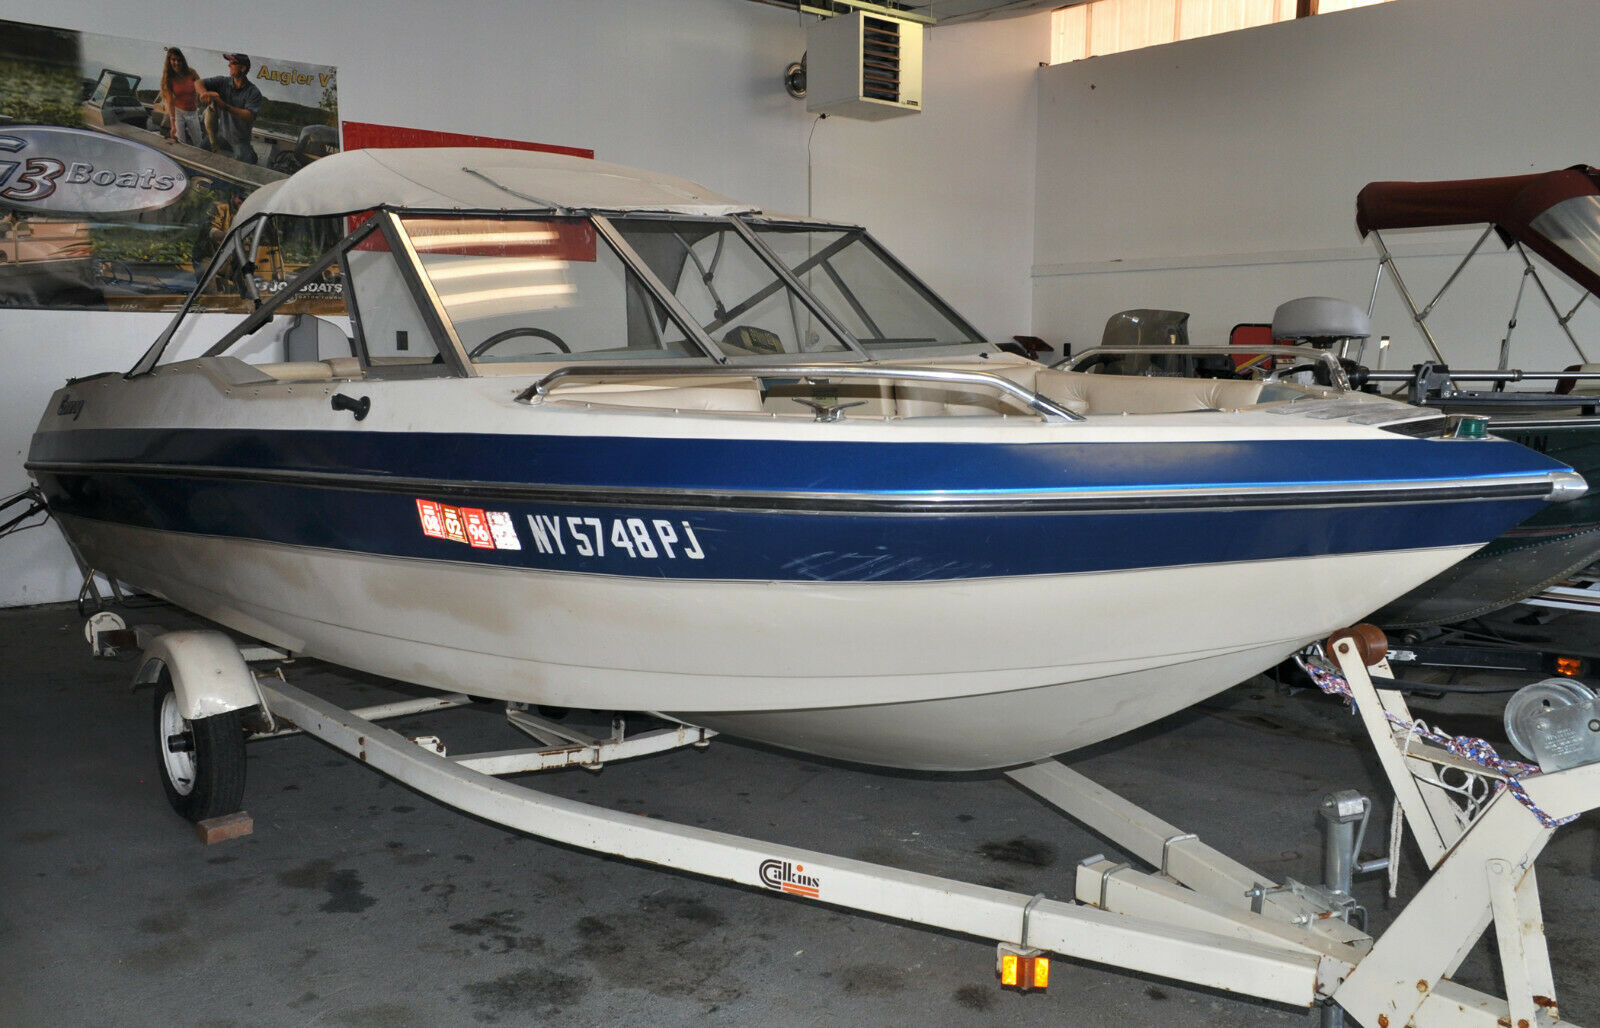 1984 Glastron Conroy 17 Ft. Open Bow W Mercruiser 3.0L 4 Cyl Engine